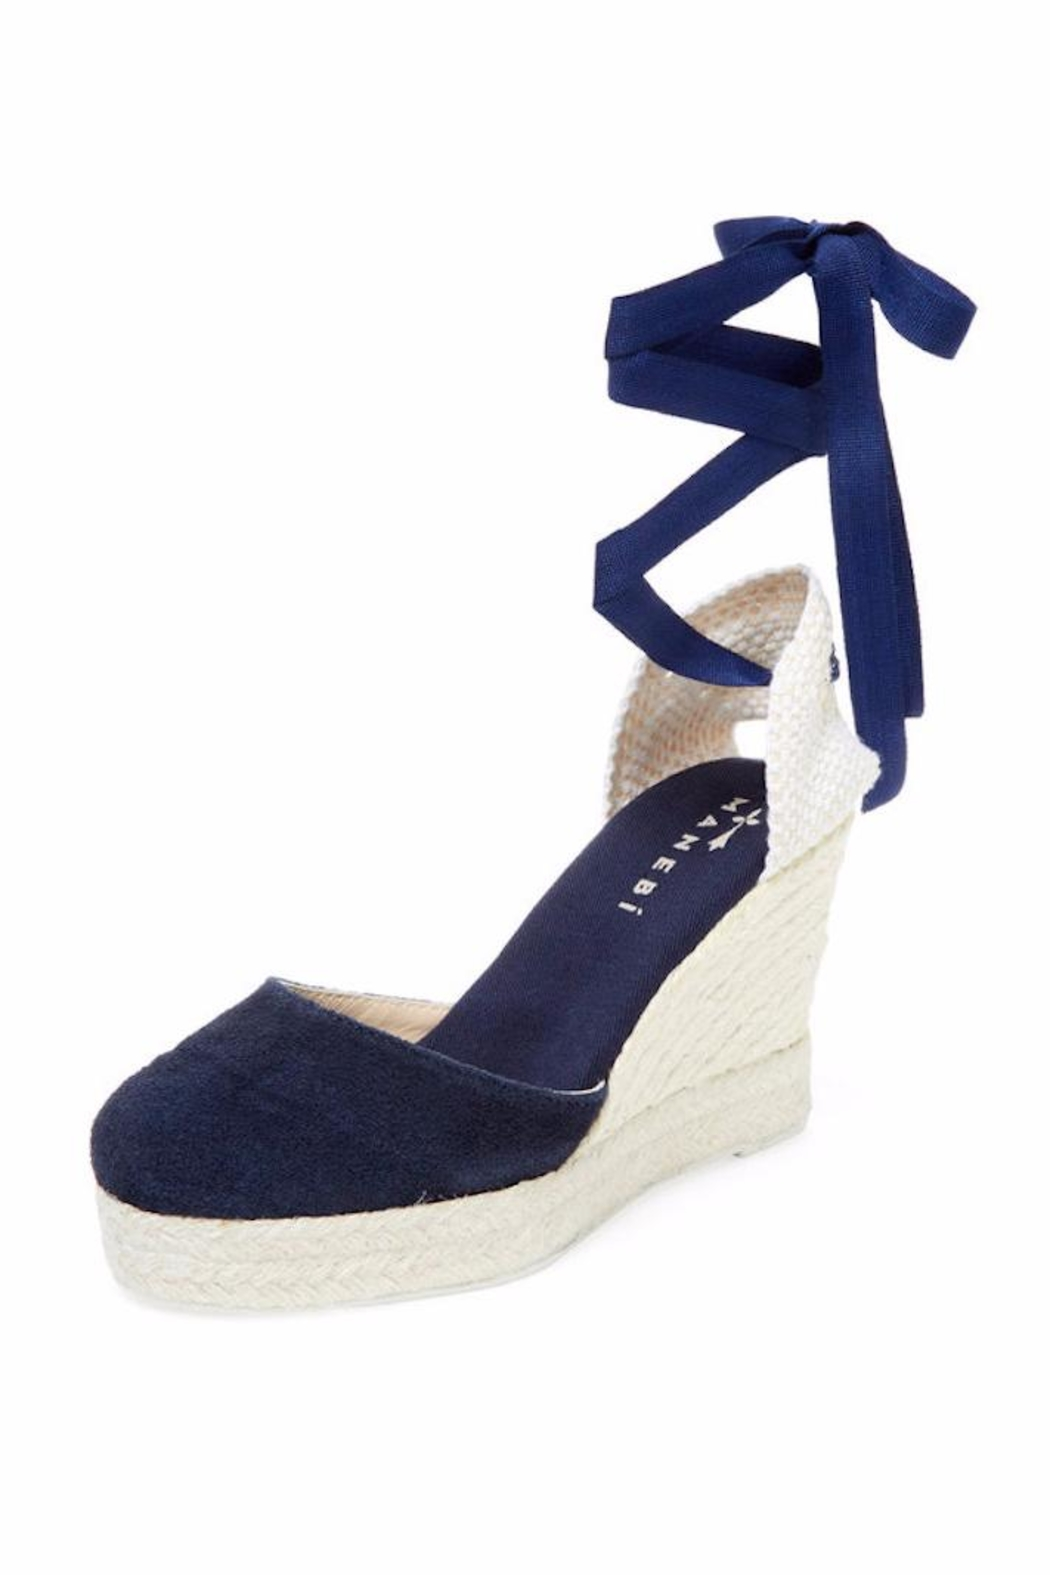 aa1359858f49 Manebi Hamptons Suede Wedge from Pennsylvania by Jasmin   Orchid ...